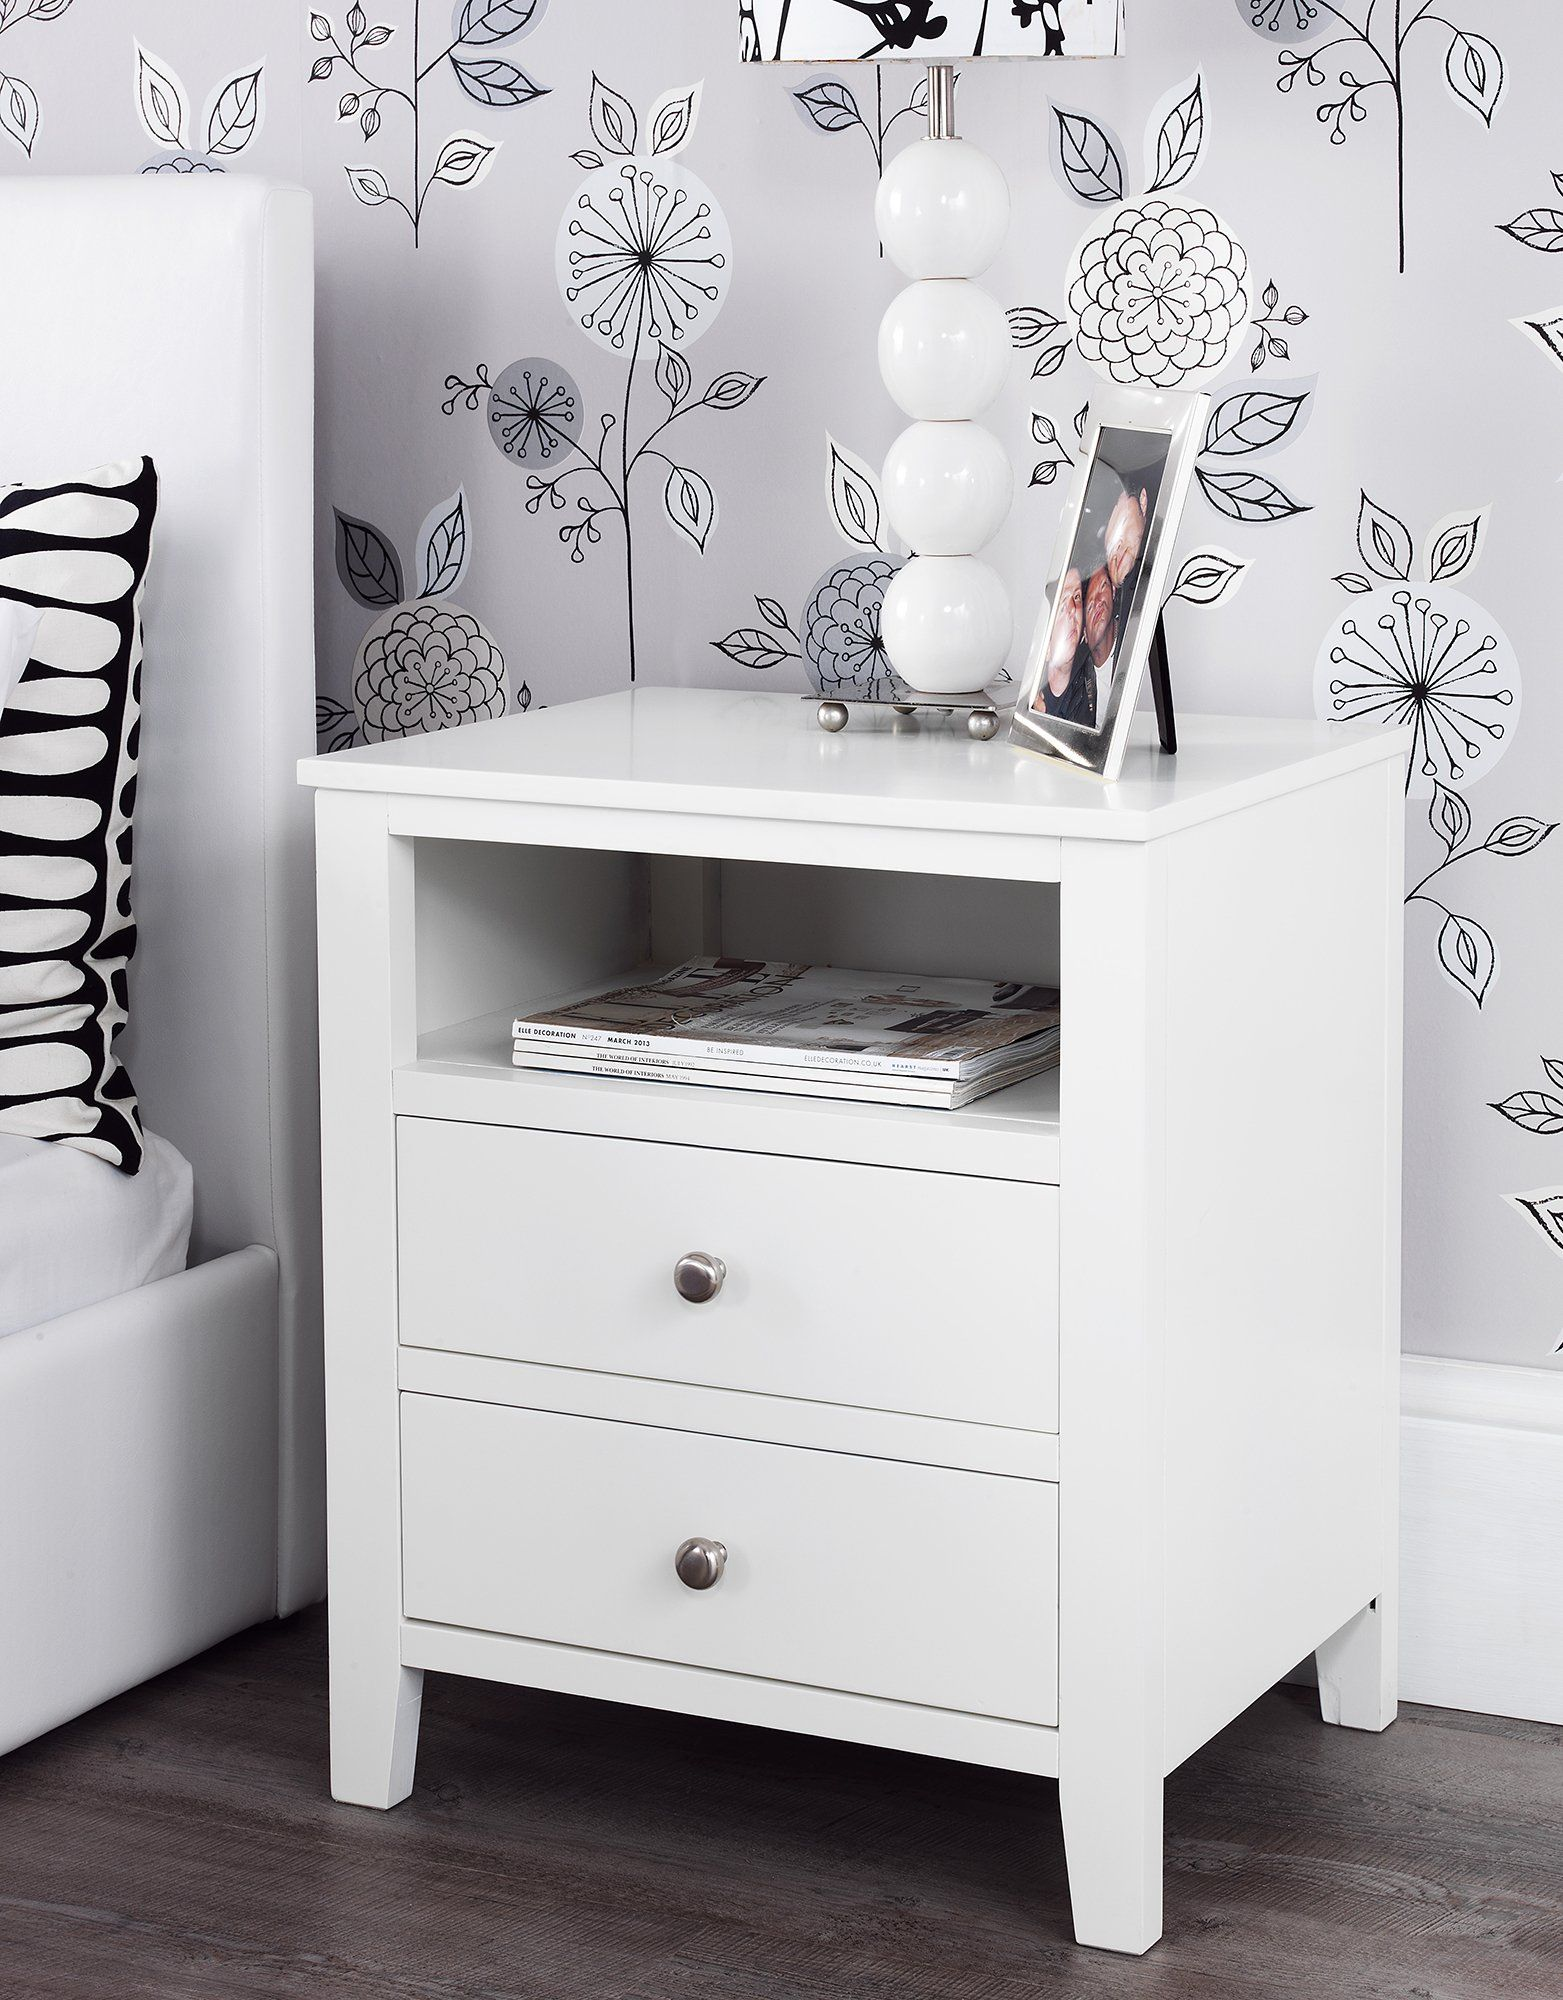 Brooklyn White Bedside Table With 2 Drawers And Shelf Metal Runners